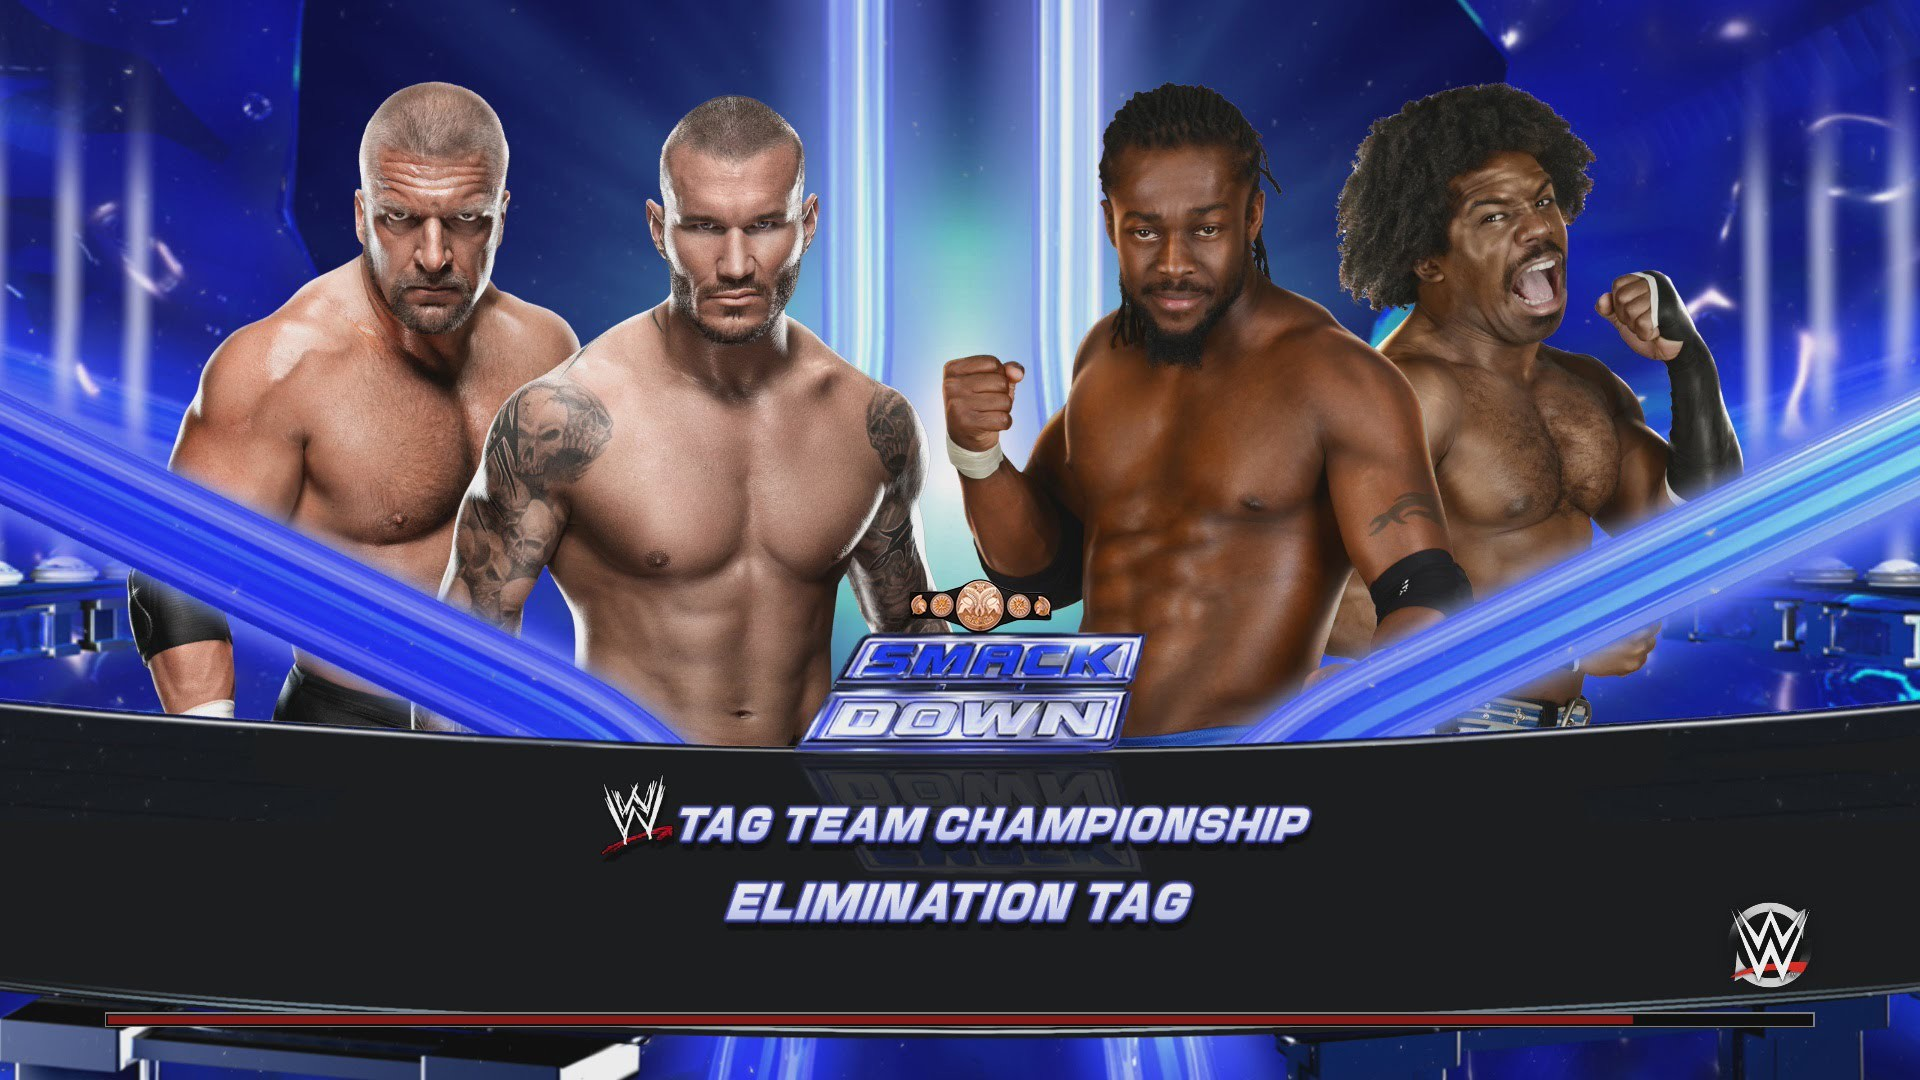 WWE SmackDown A New Day vs. Evolution Tag Team Championship Match